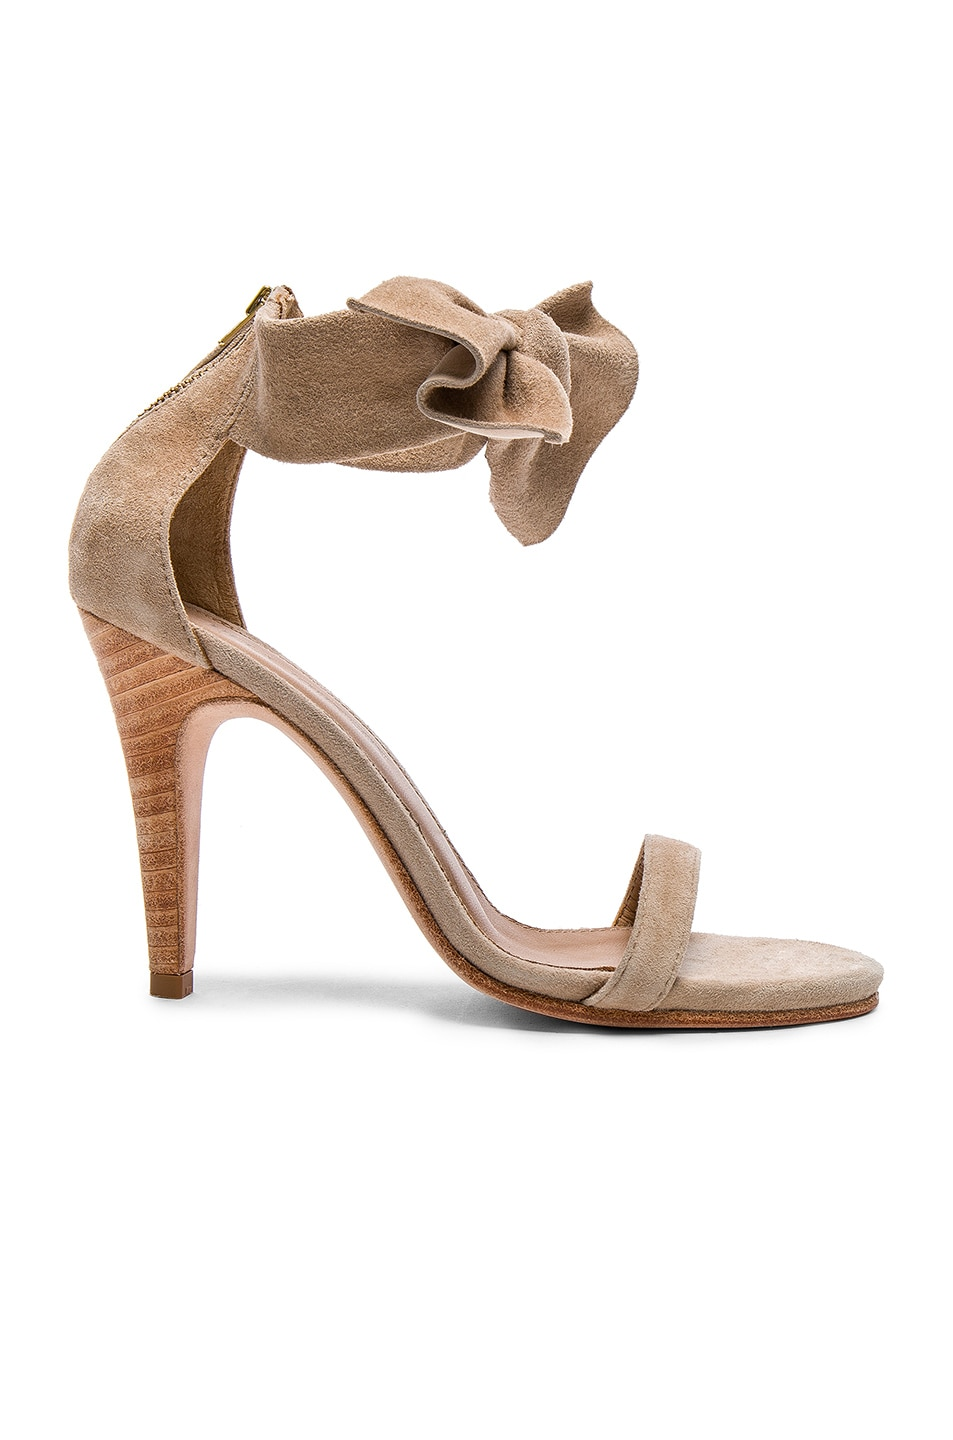 Image 1 of Ulla Johnson Suede Thecia Heels in Taupe